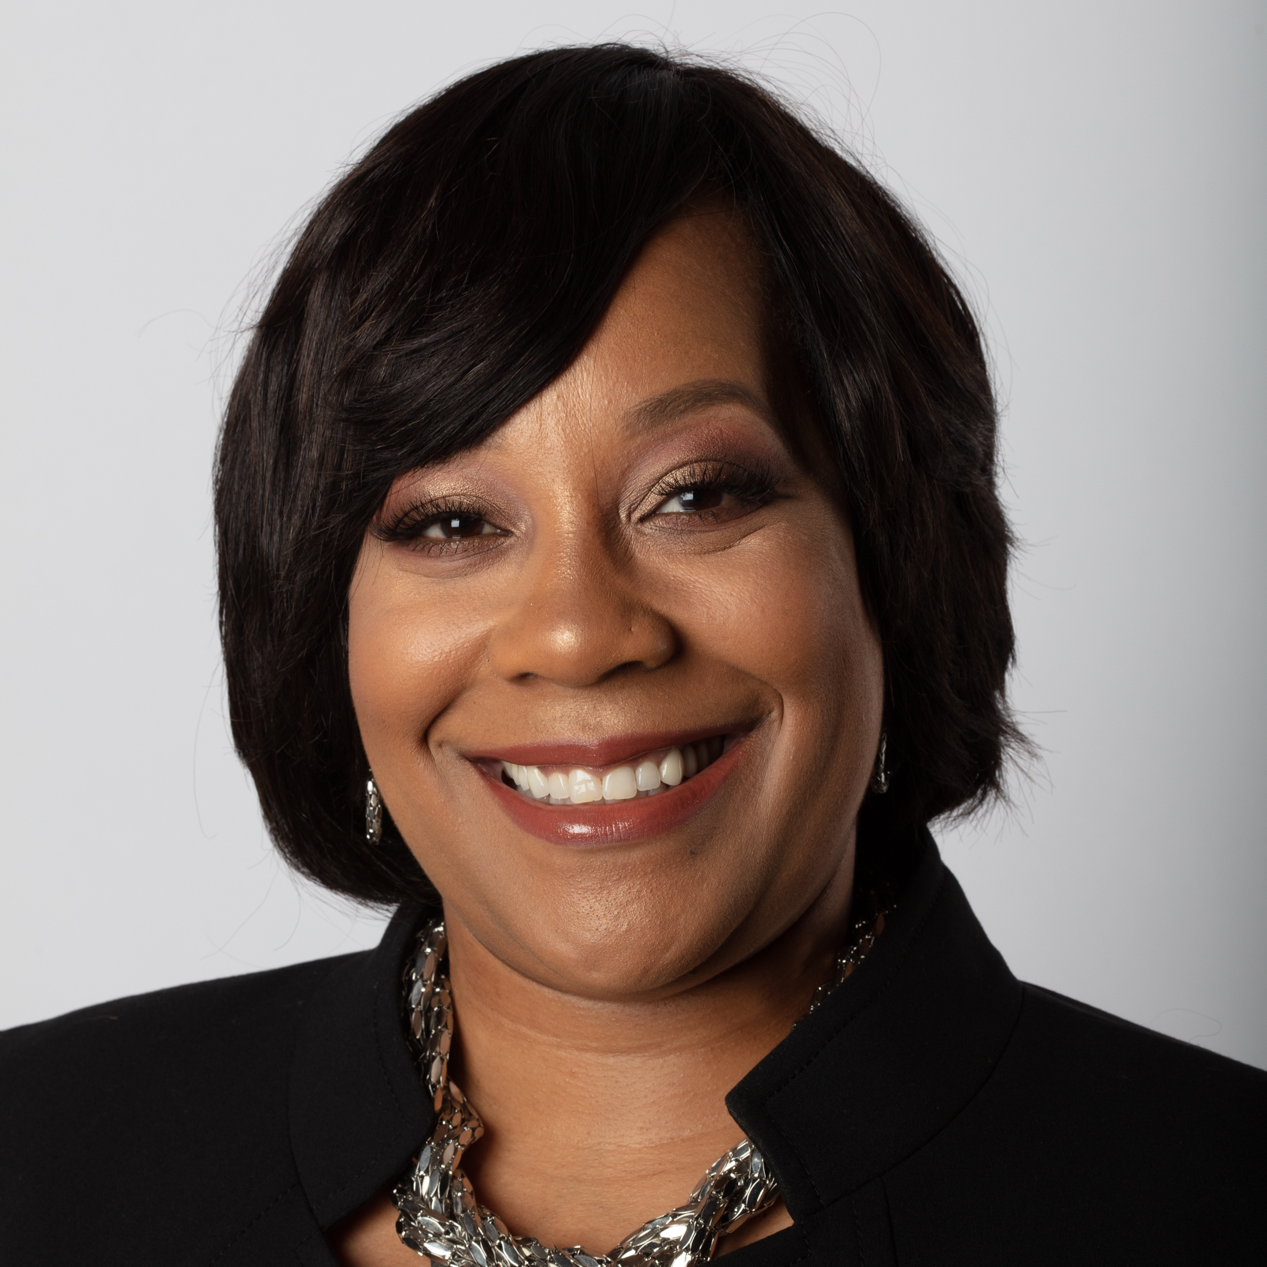 Kristal Walker, Director, Professional Development at Guitar Center